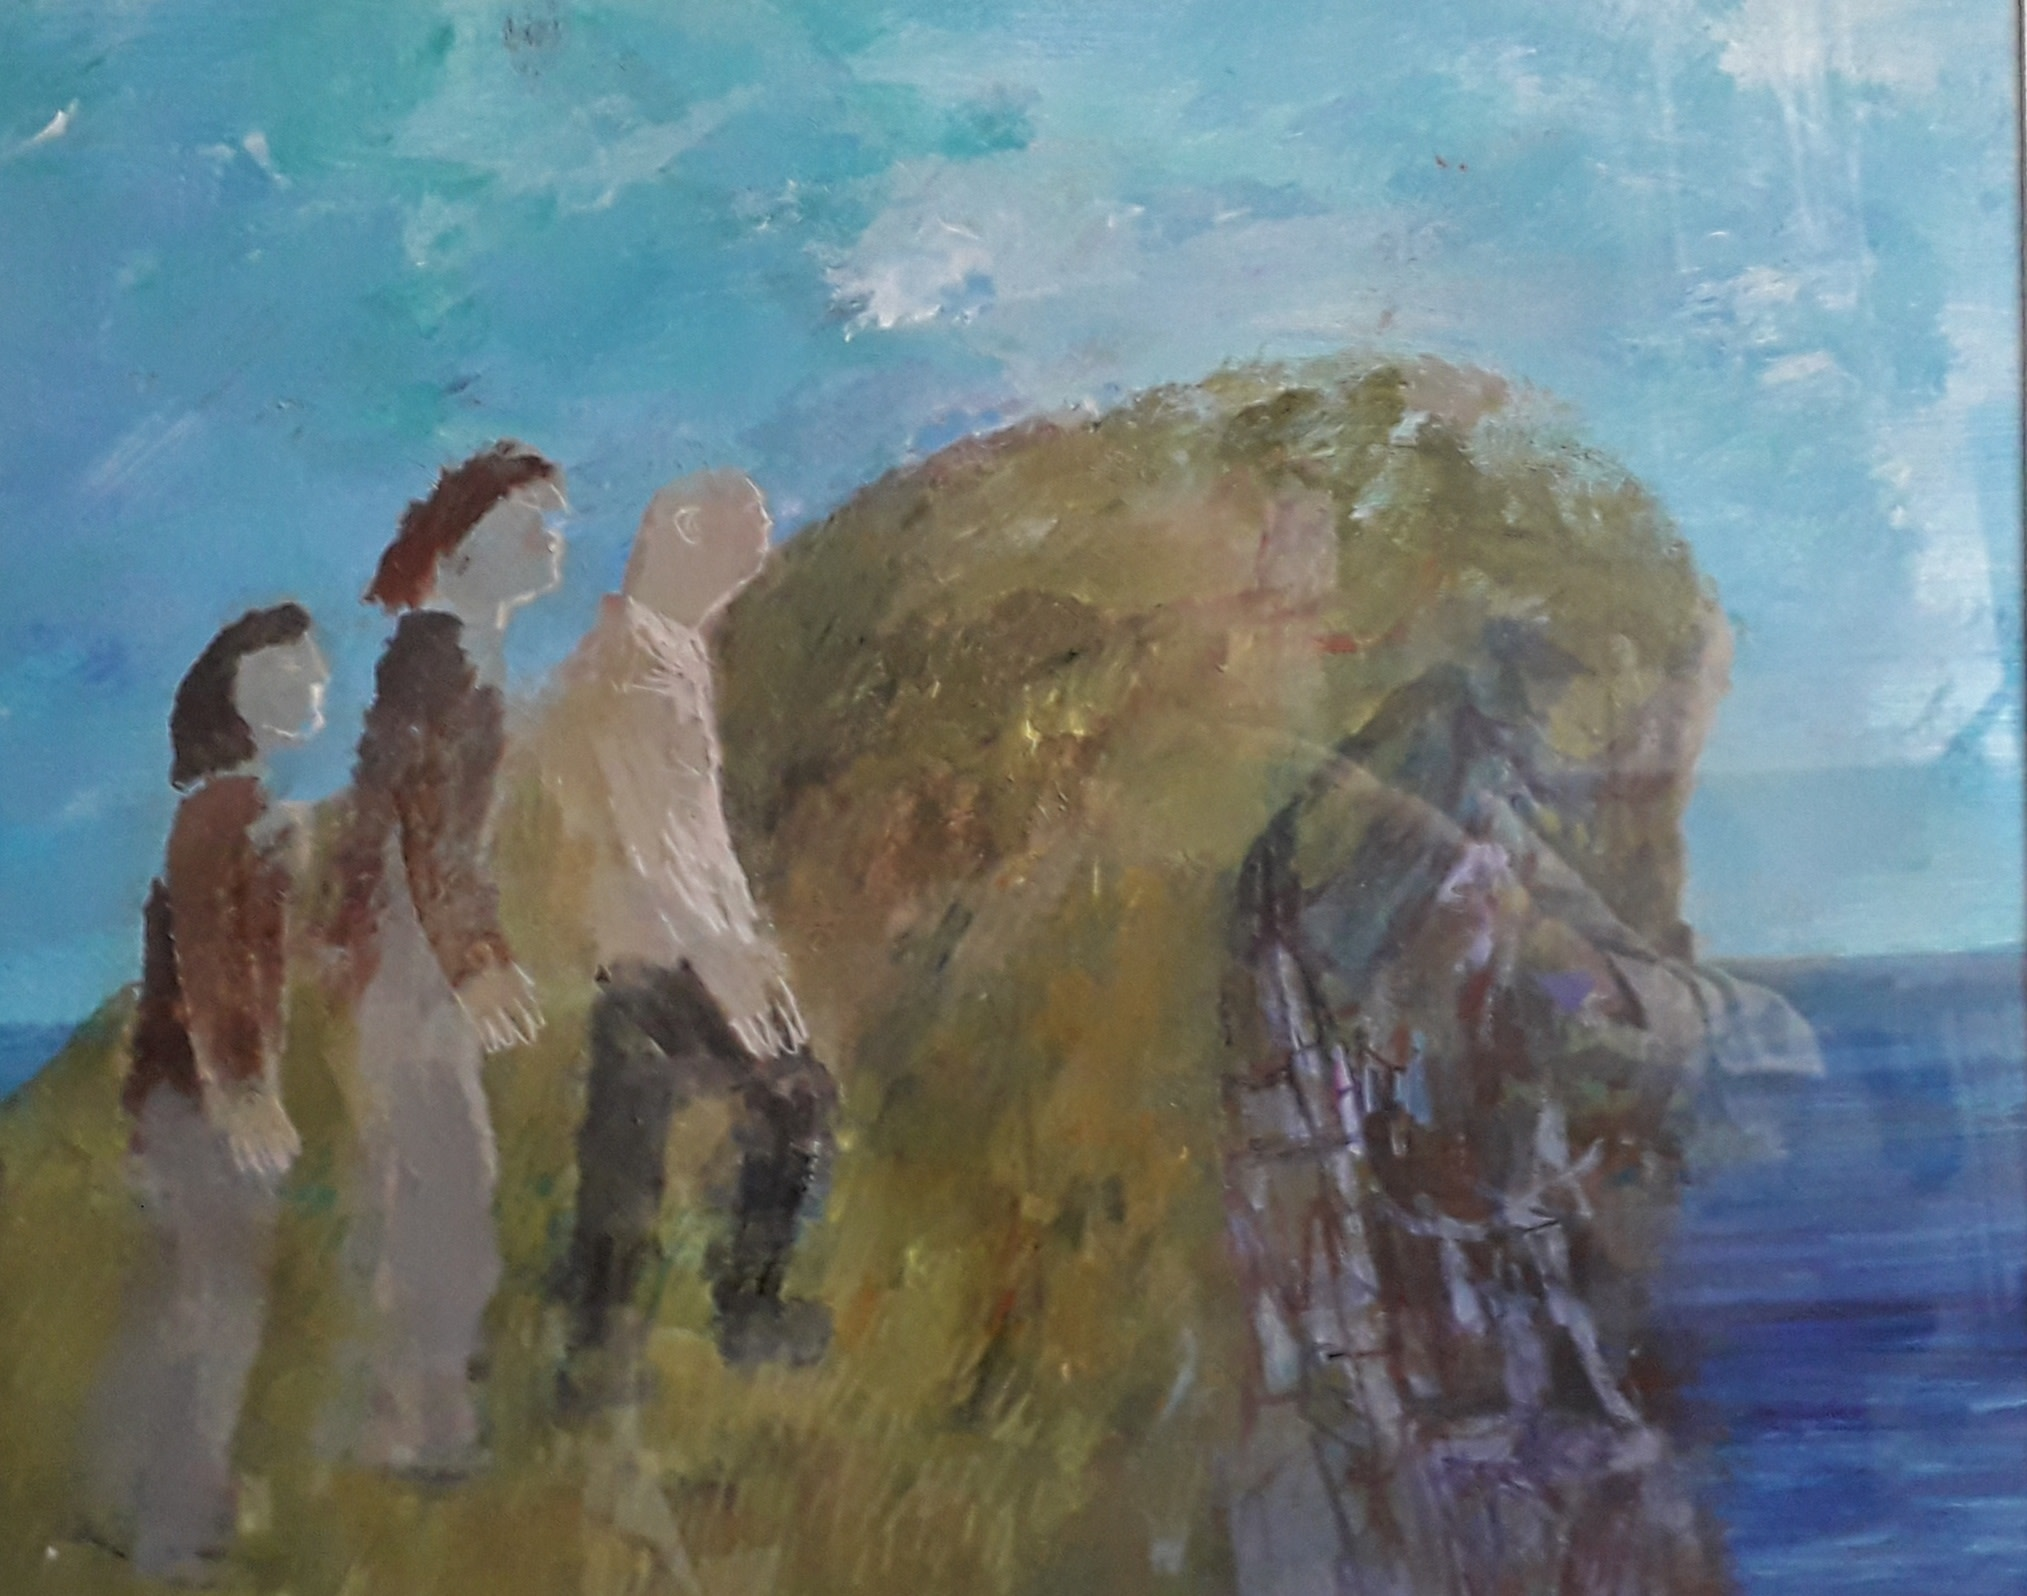 """<span class=""""link fancybox-details-link""""><a href=""""/artists/103-richard-sorrell/works/12318-richard-sorrell-three-people-climbing-a-cliff/"""">View Detail Page</a></span><div class=""""artist""""><span class=""""artist""""><strong>Richard Sorrell</strong></span></div><div class=""""title""""><em>Three People Climbing a Cliff</em></div><div class=""""medium"""">acrylic</div><div class=""""dimensions"""">Frame: 52 x 60 cm<br /> Artwork: 36 x 44 cm</div><div class=""""price"""">£850.00</div>"""